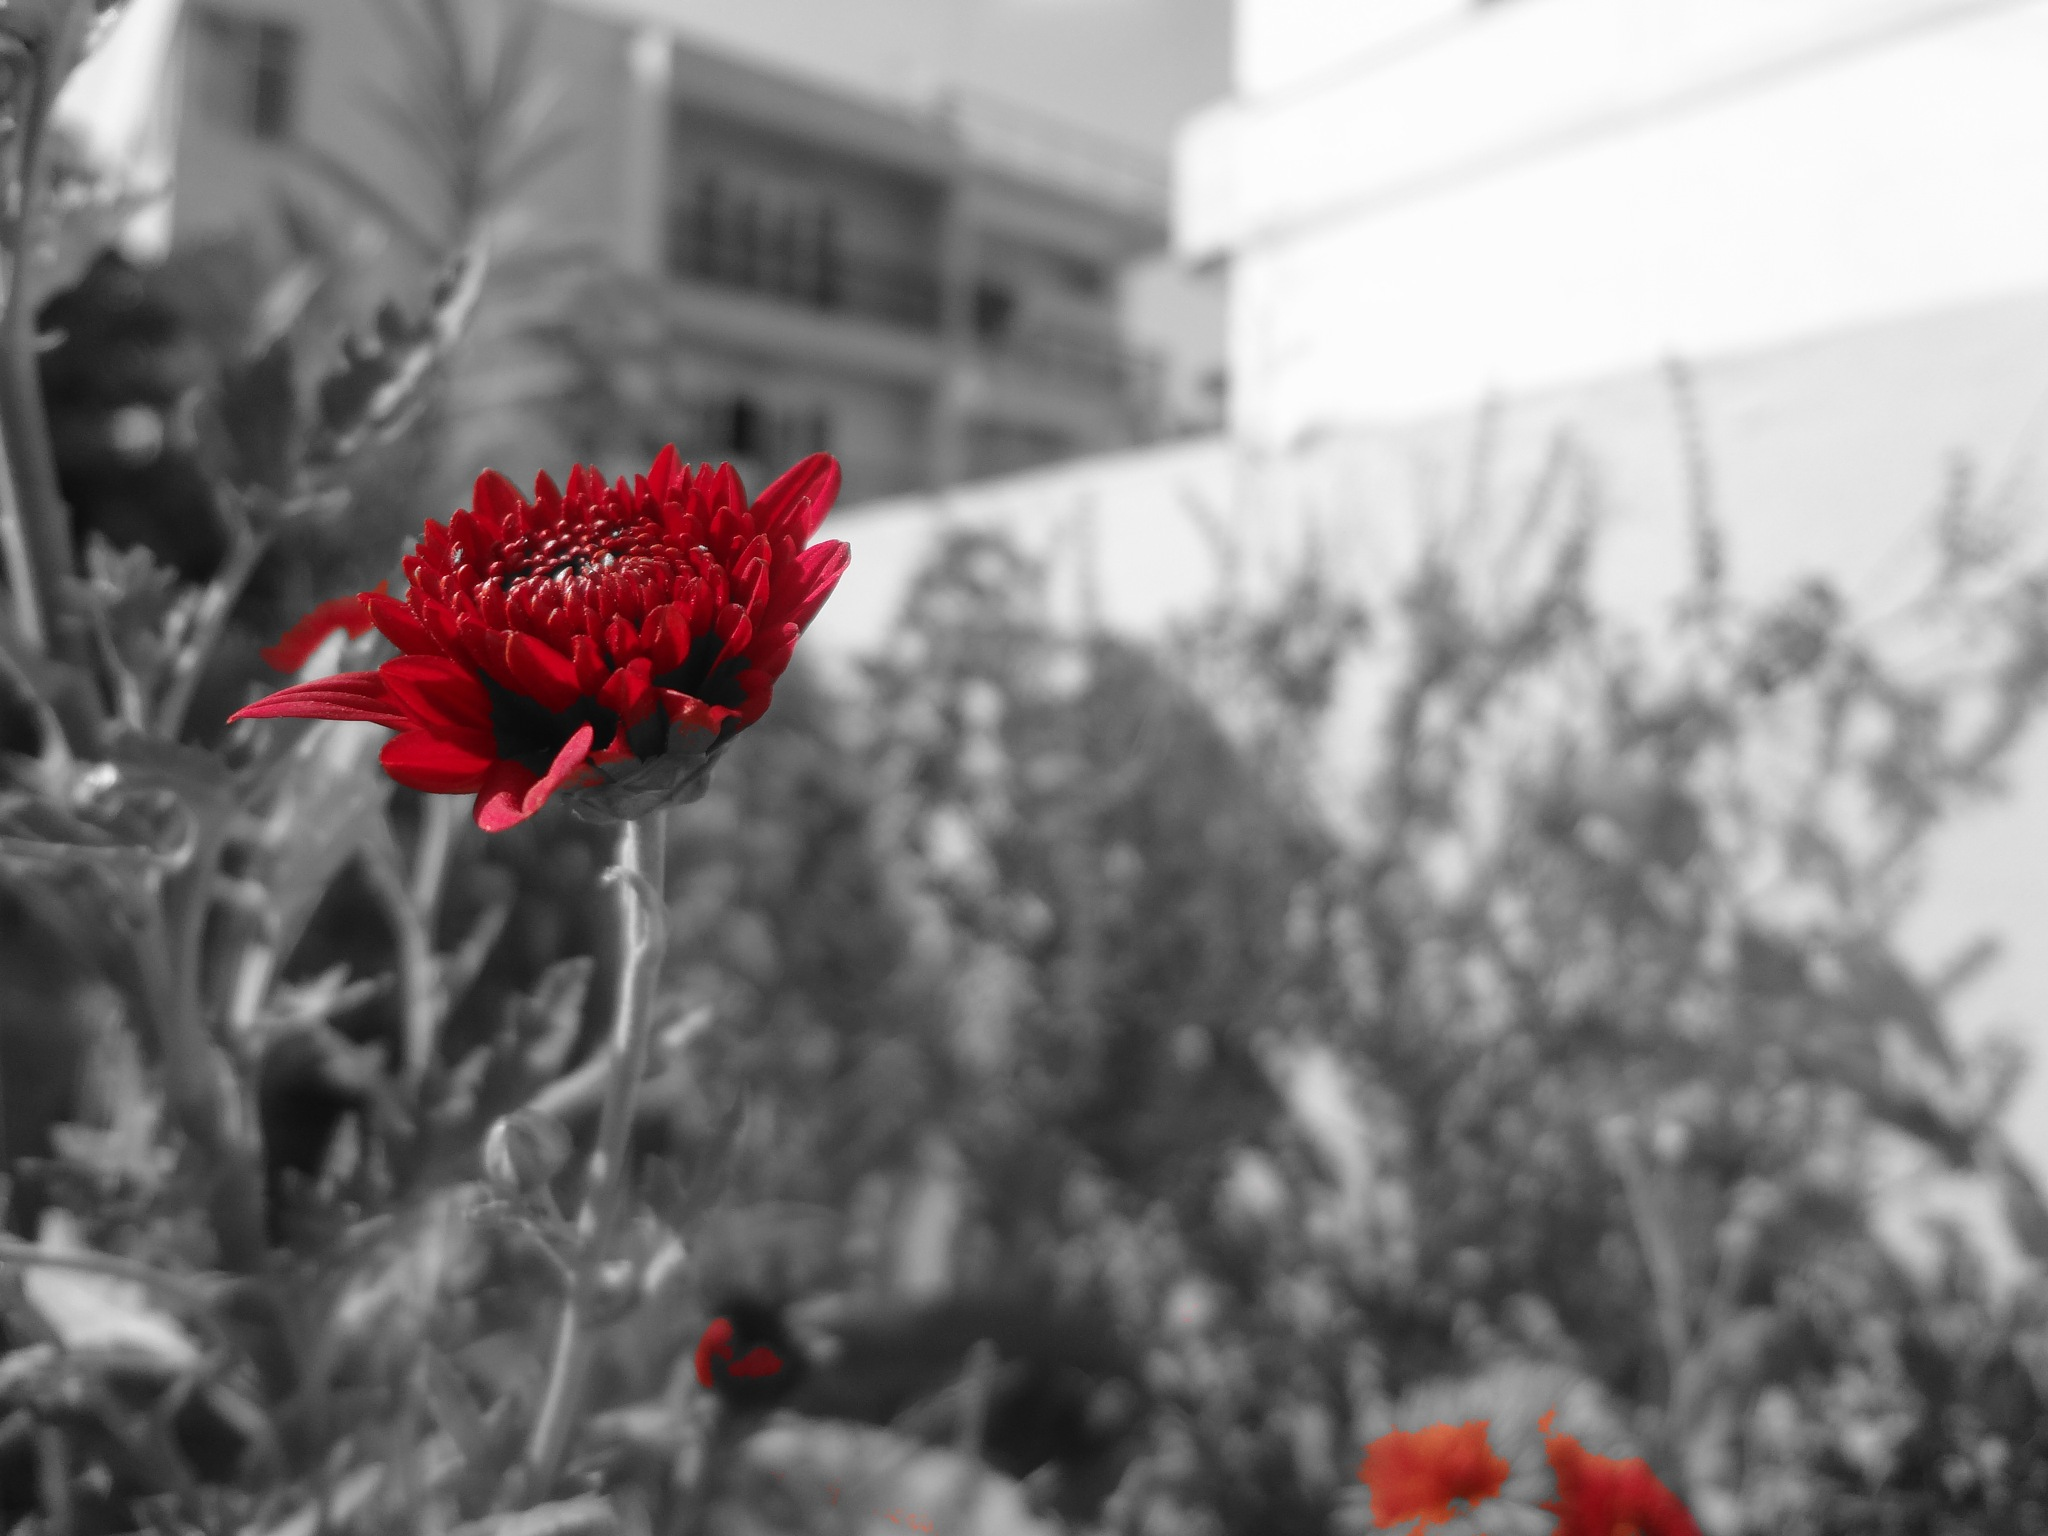 selective color photography by pjagadish